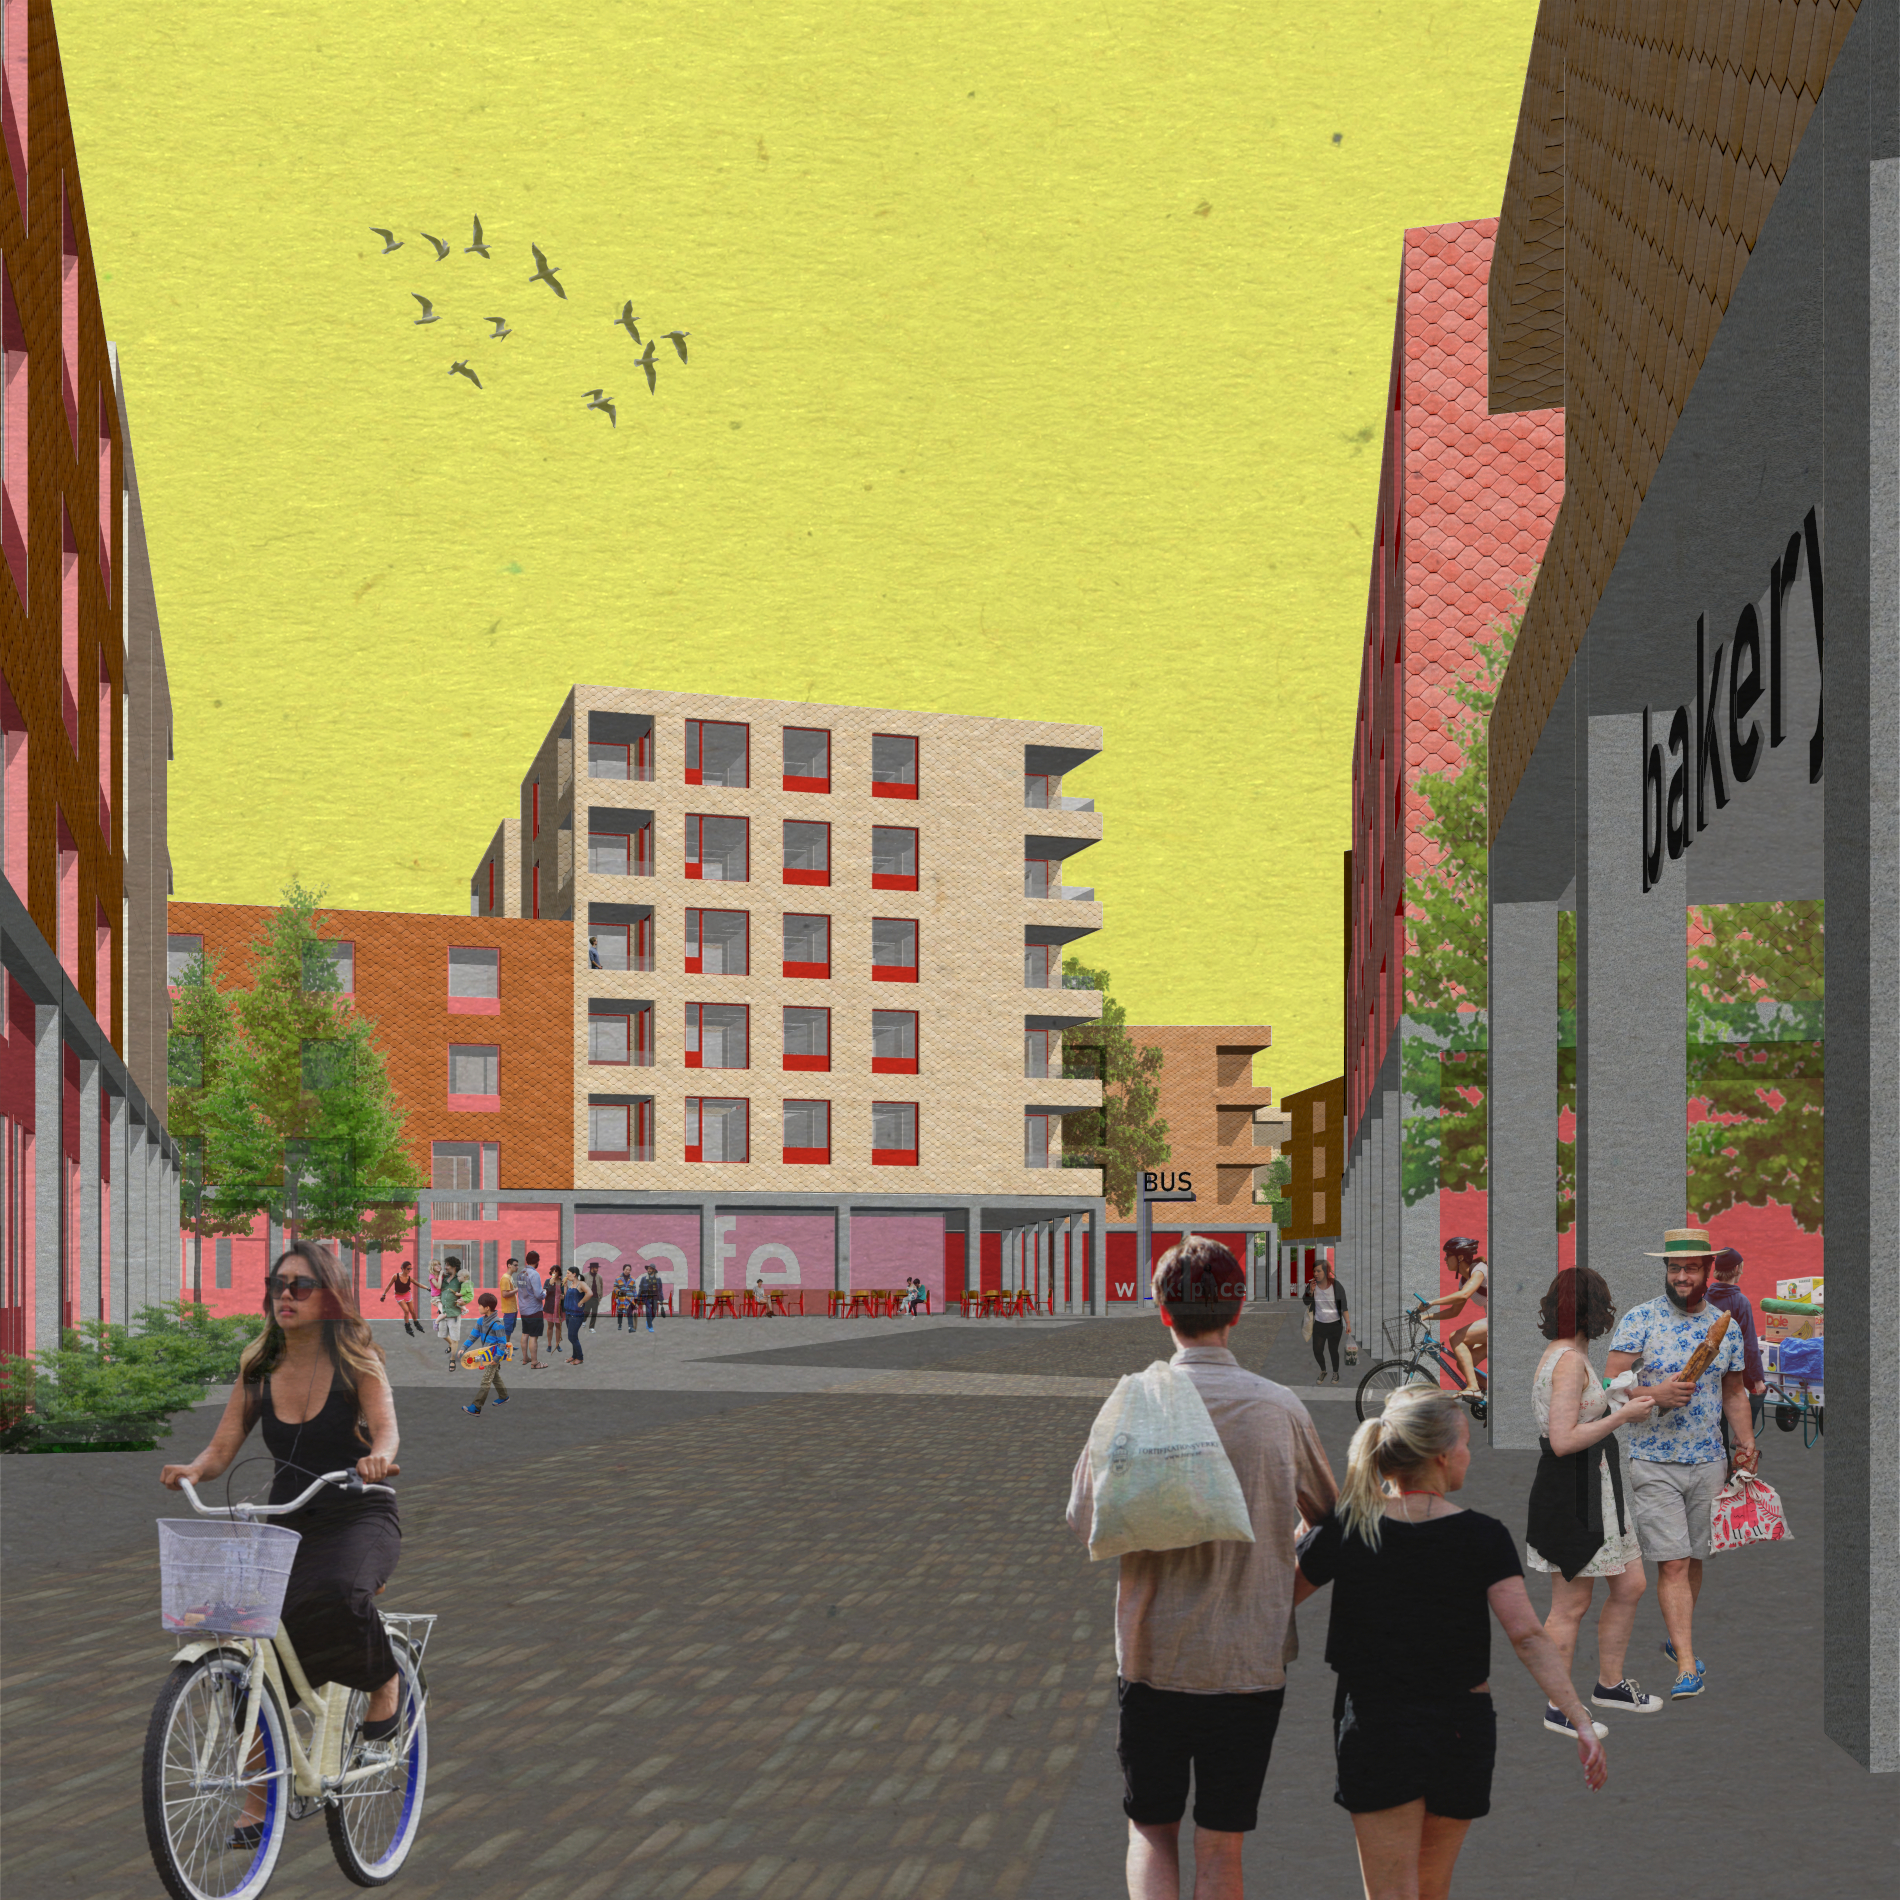 public space designed for people, not cars. mixed uses create a walkable community